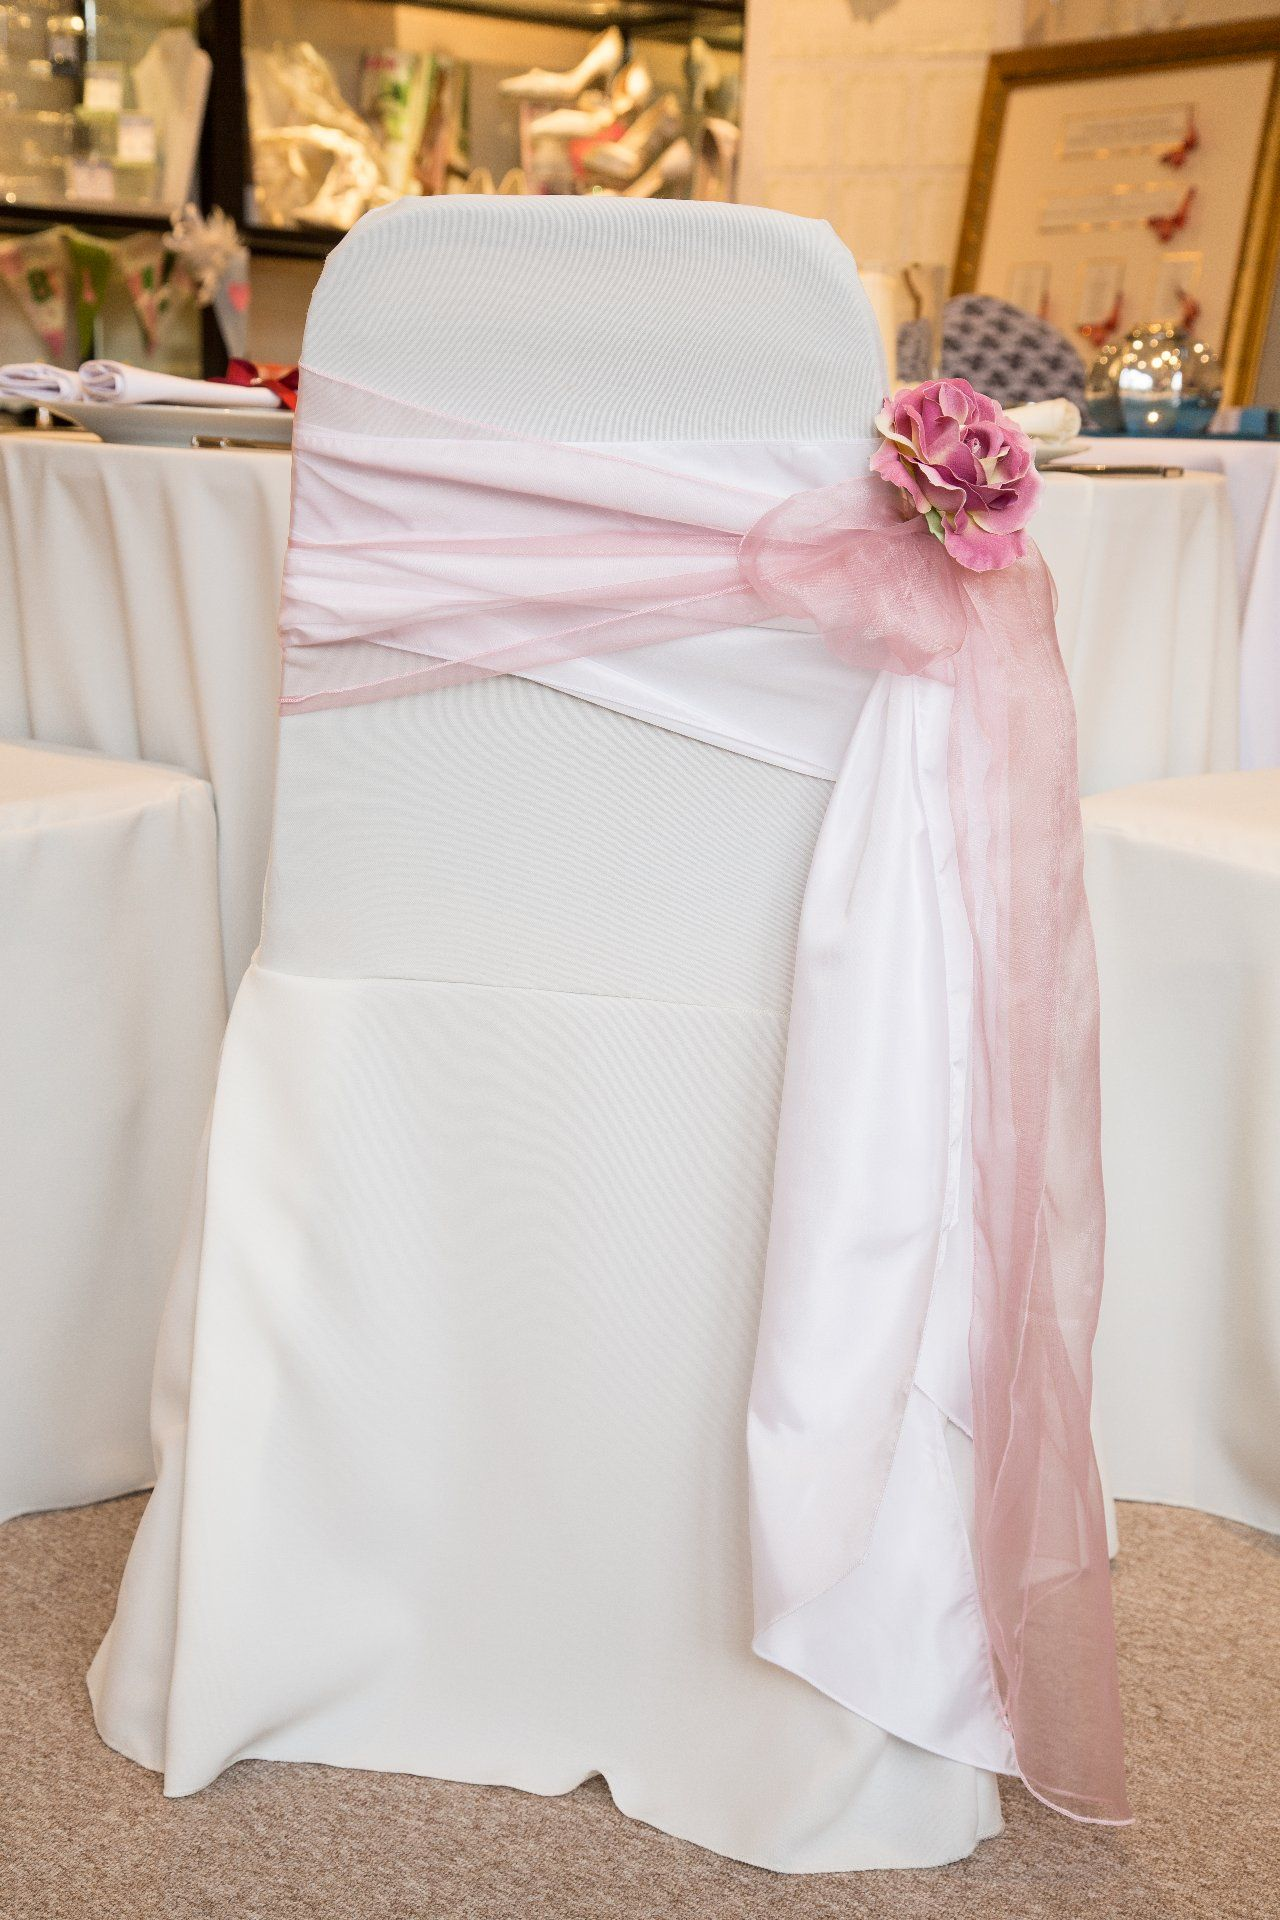 Wedding Chair Cover Hire Northamptonshire Blue High Back Full Event Dressing And Design Service Http Www